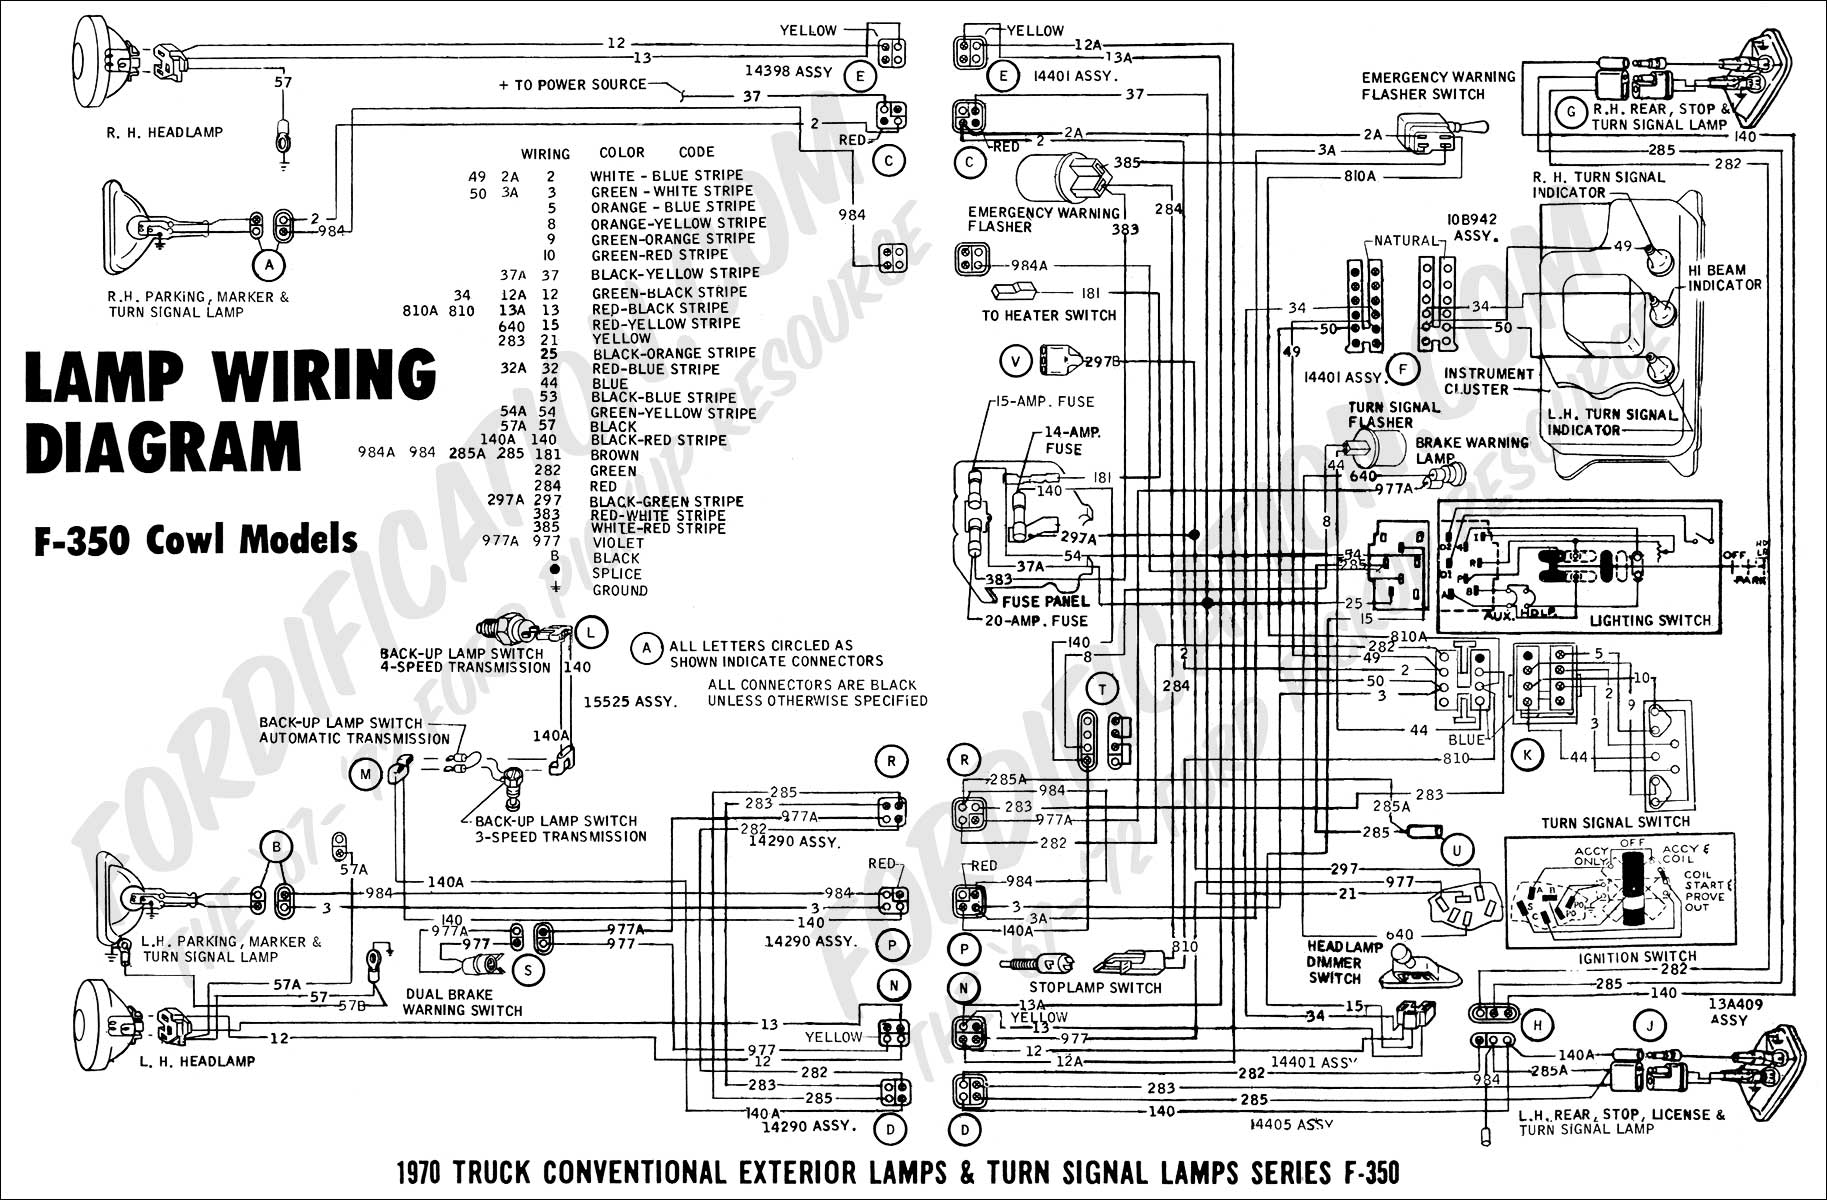 1995 Ford E 350 Tail Light Wiring Diagrams Simple Diagram 70 Chevy C10 Schematic F Blog 4x4